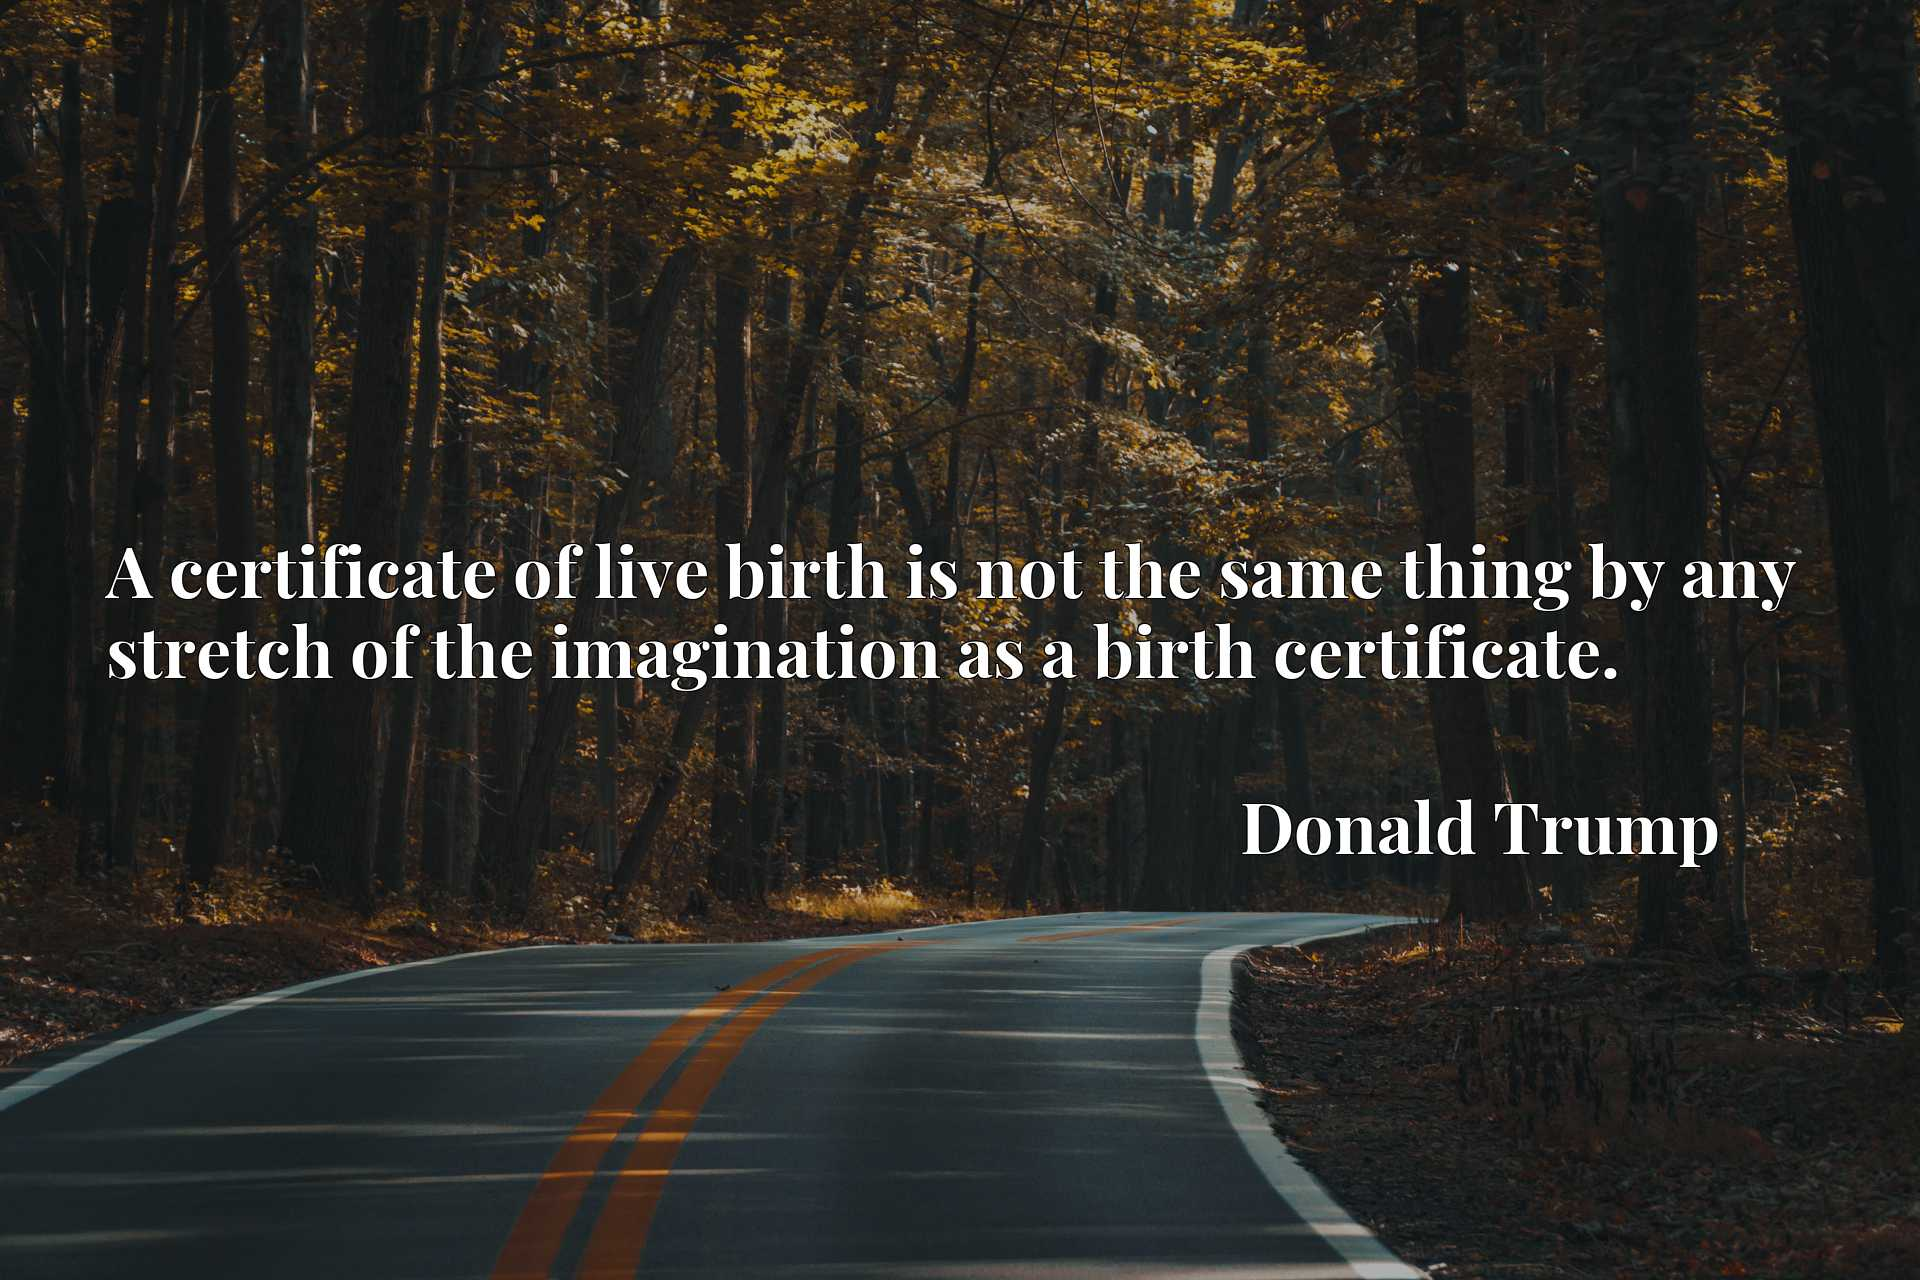 A certificate of live birth is not the same thing by any stretch of the imagination as a birth certificate.